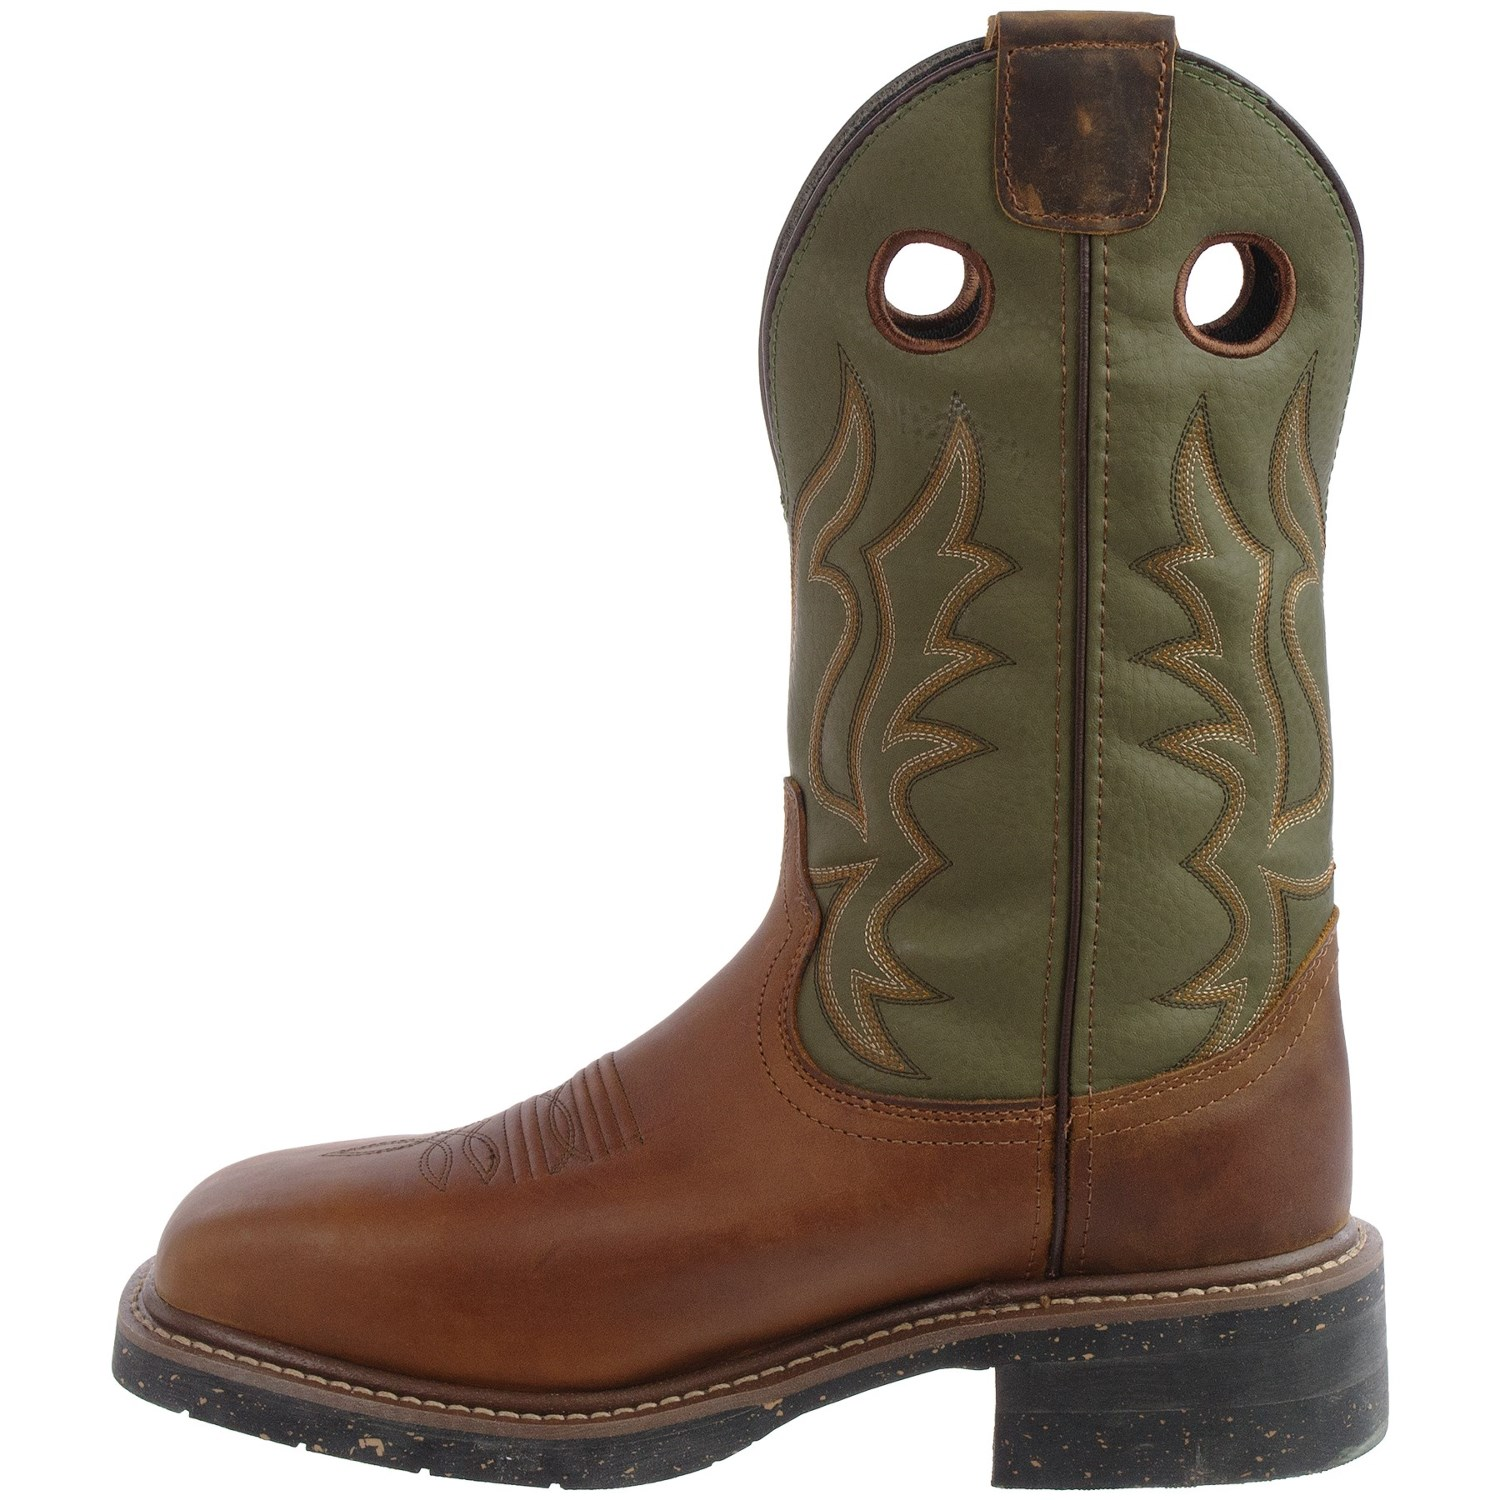 Keen Work Boots Clearance